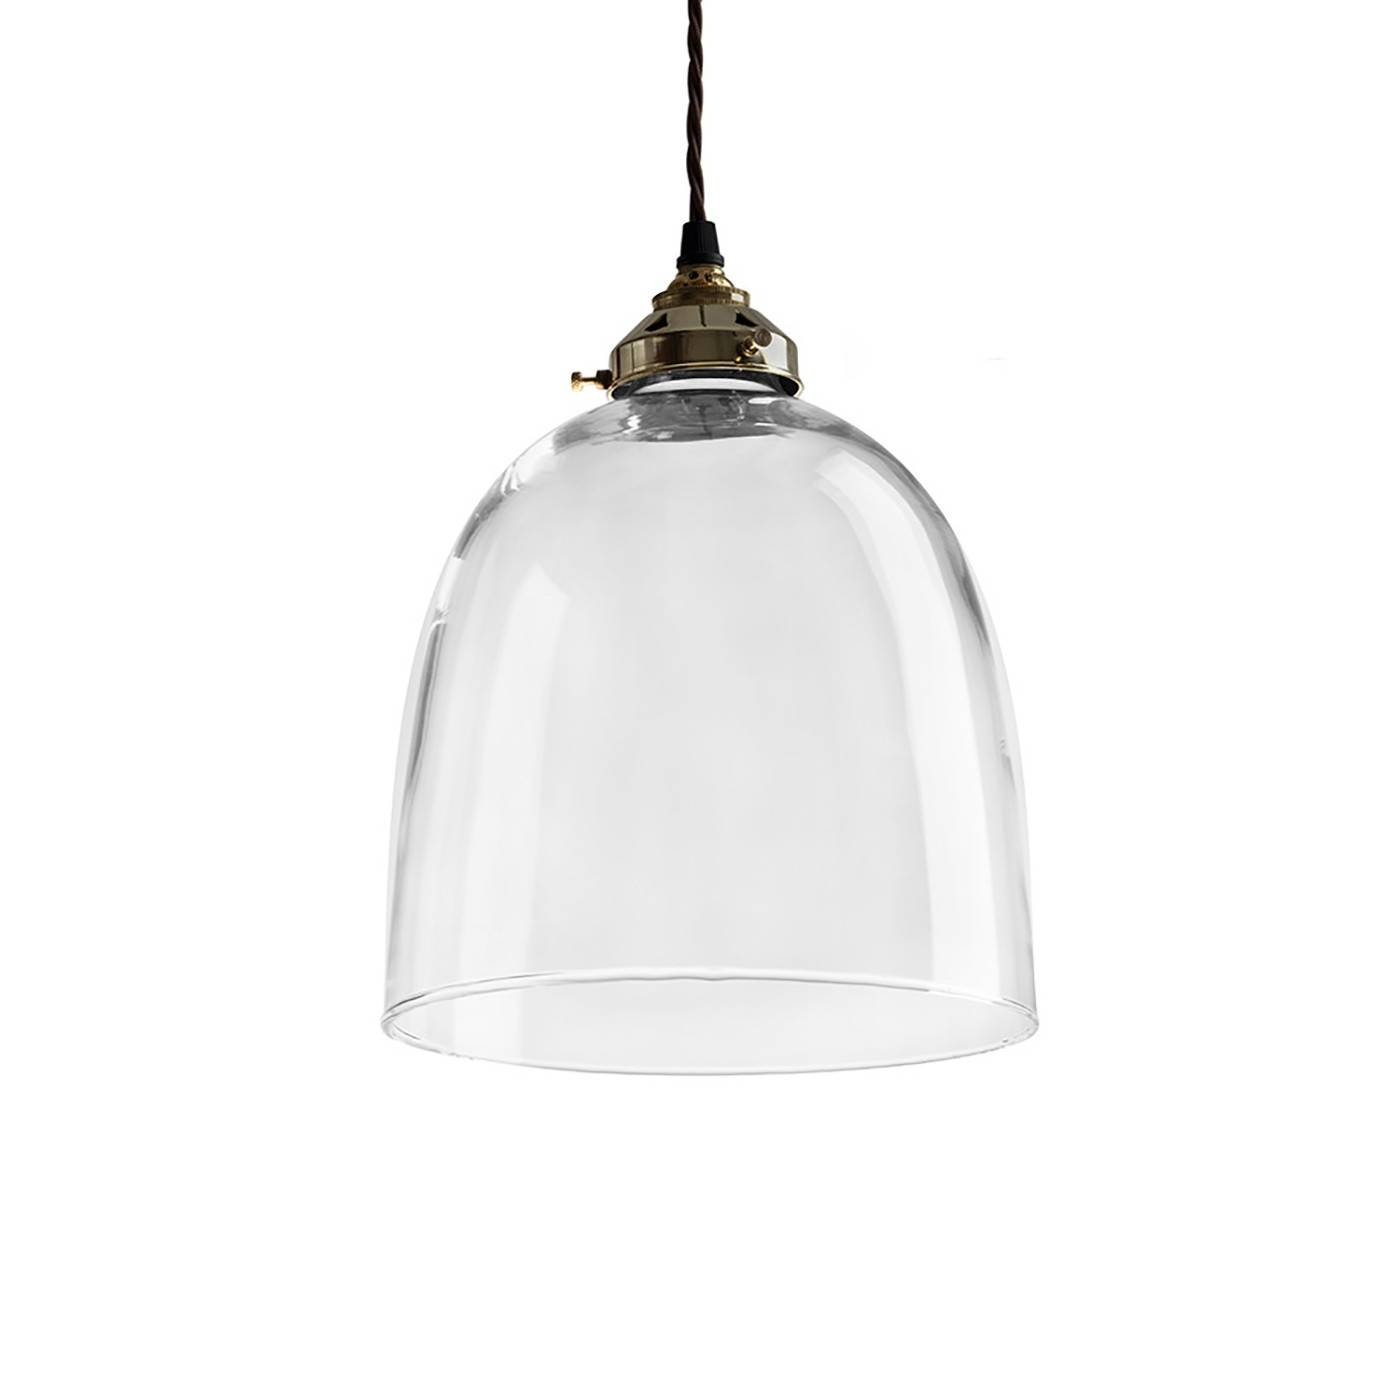 Glass Bell Pendant Light Antique Metal Fittings Extra Large with regard to Glass Pendant Lights Fittings (Image 9 of 15)